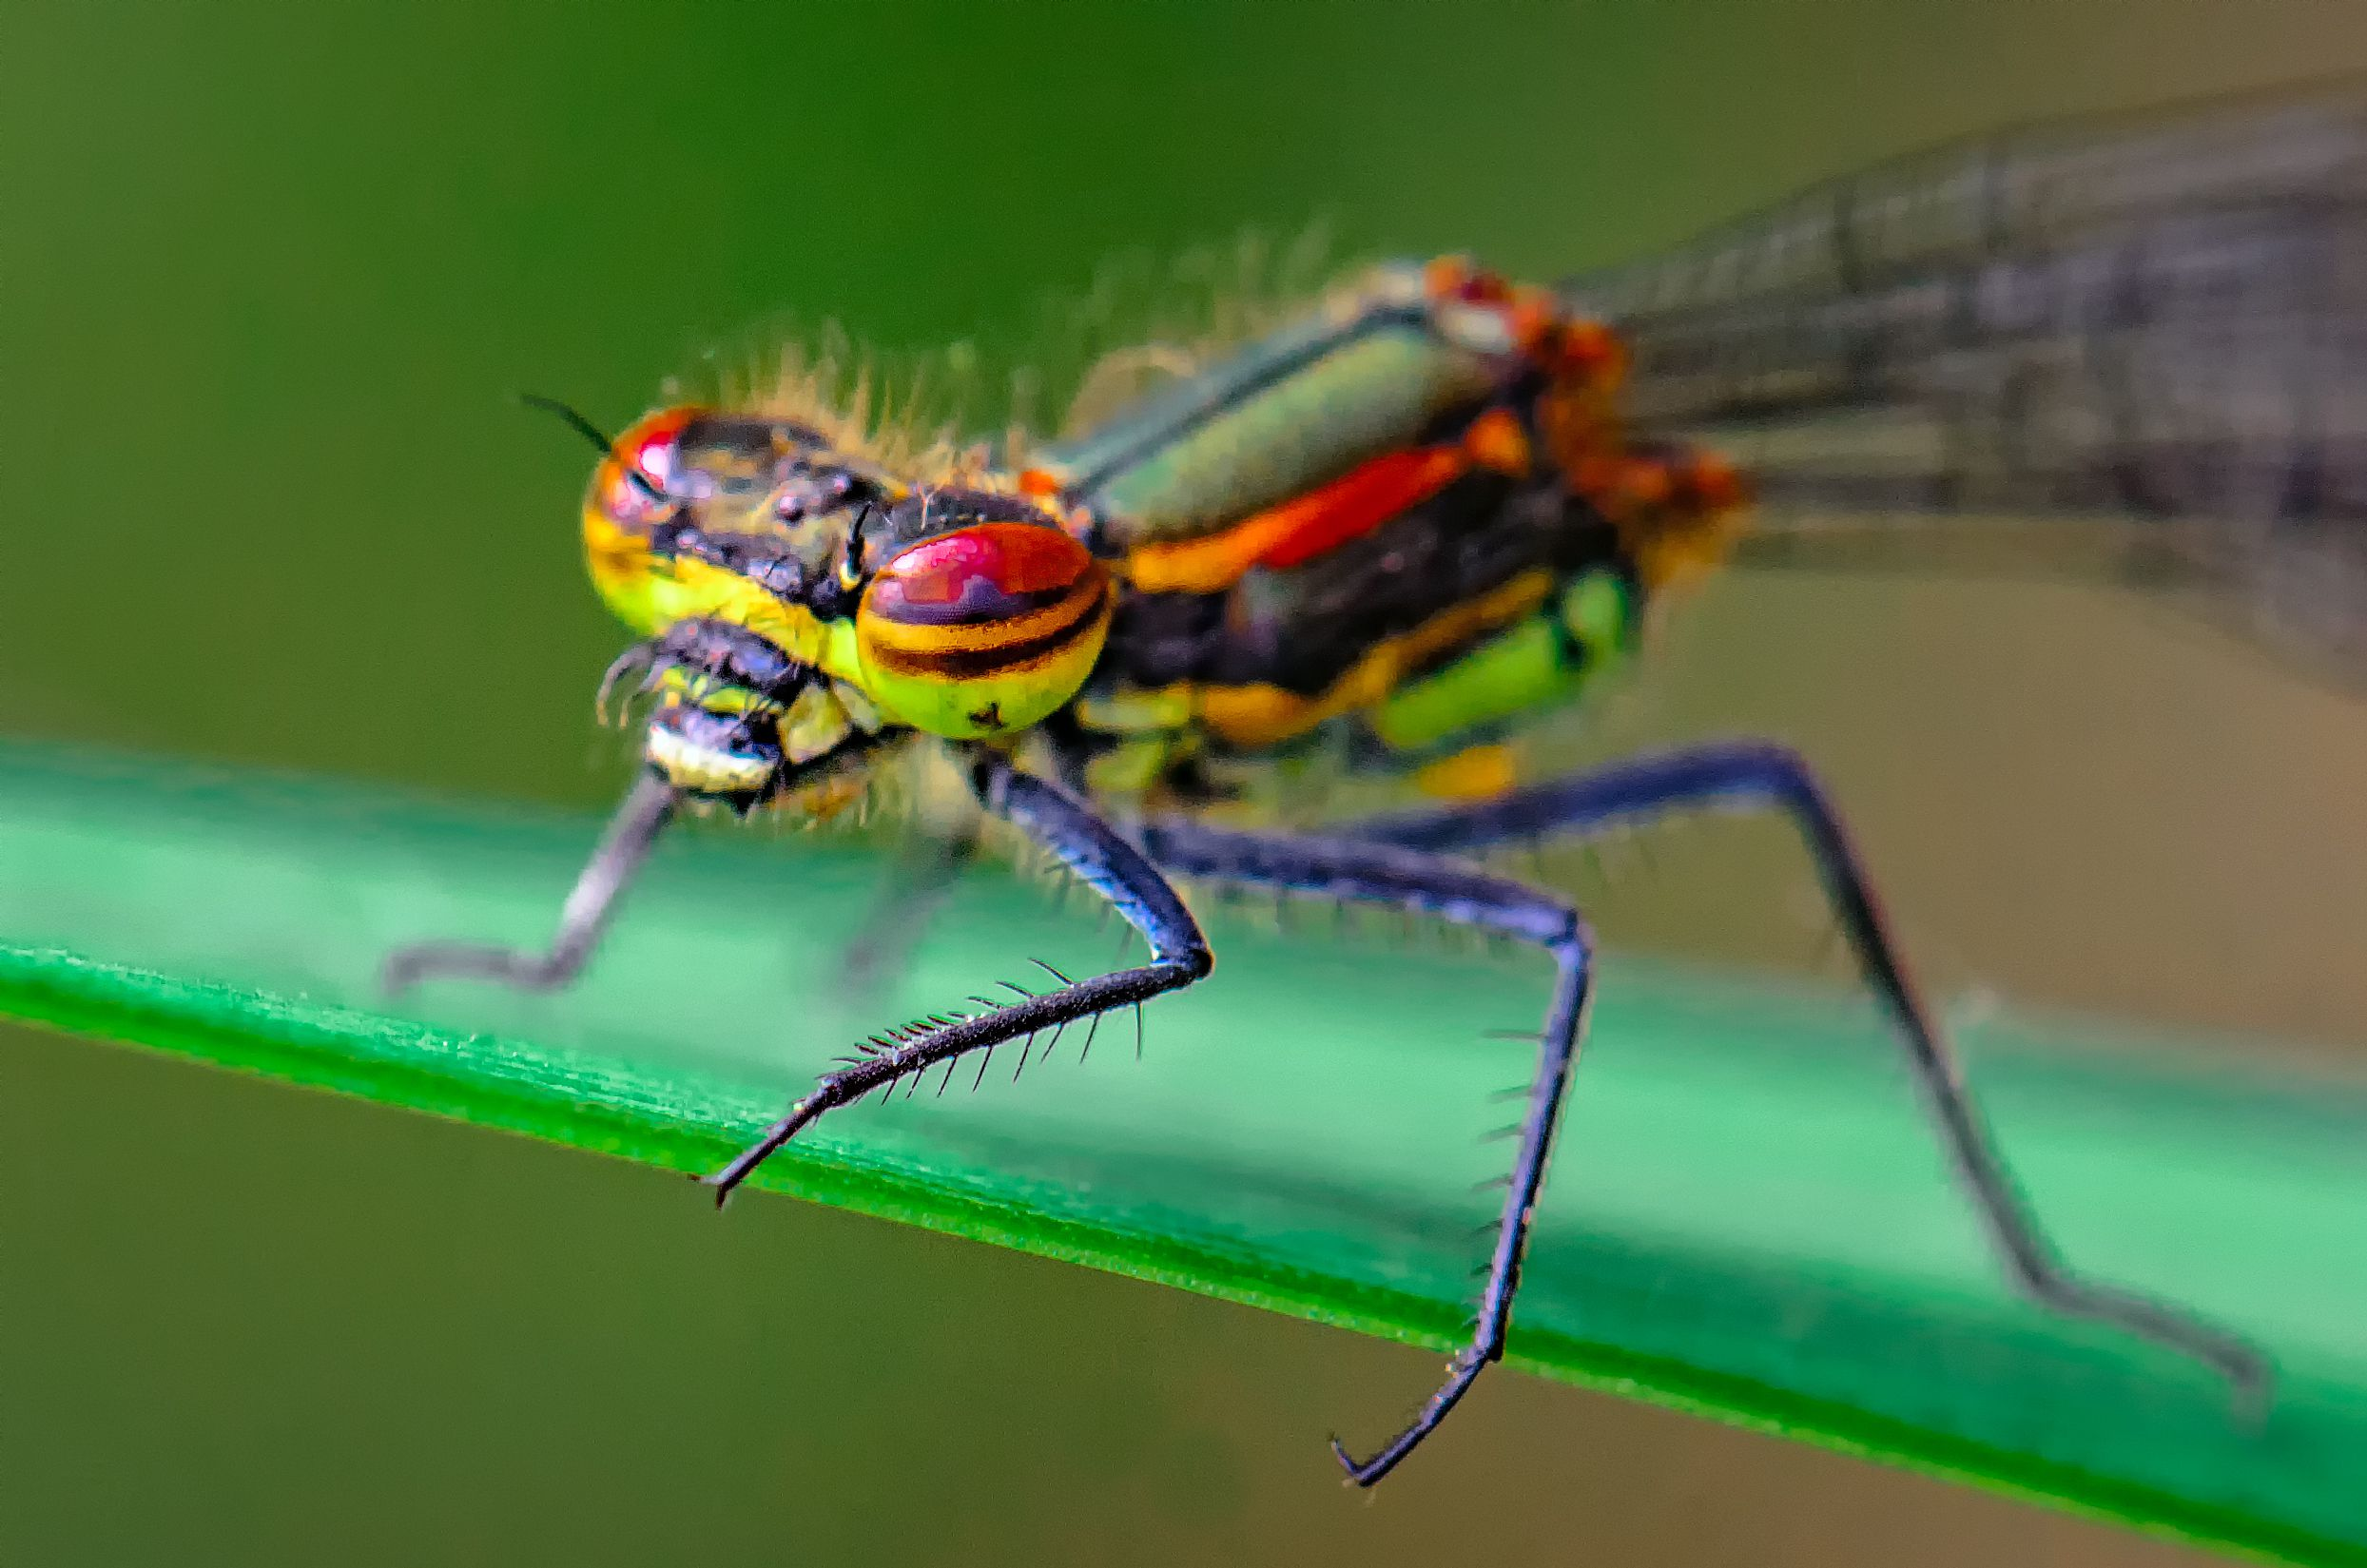 how to identify a bug or insect